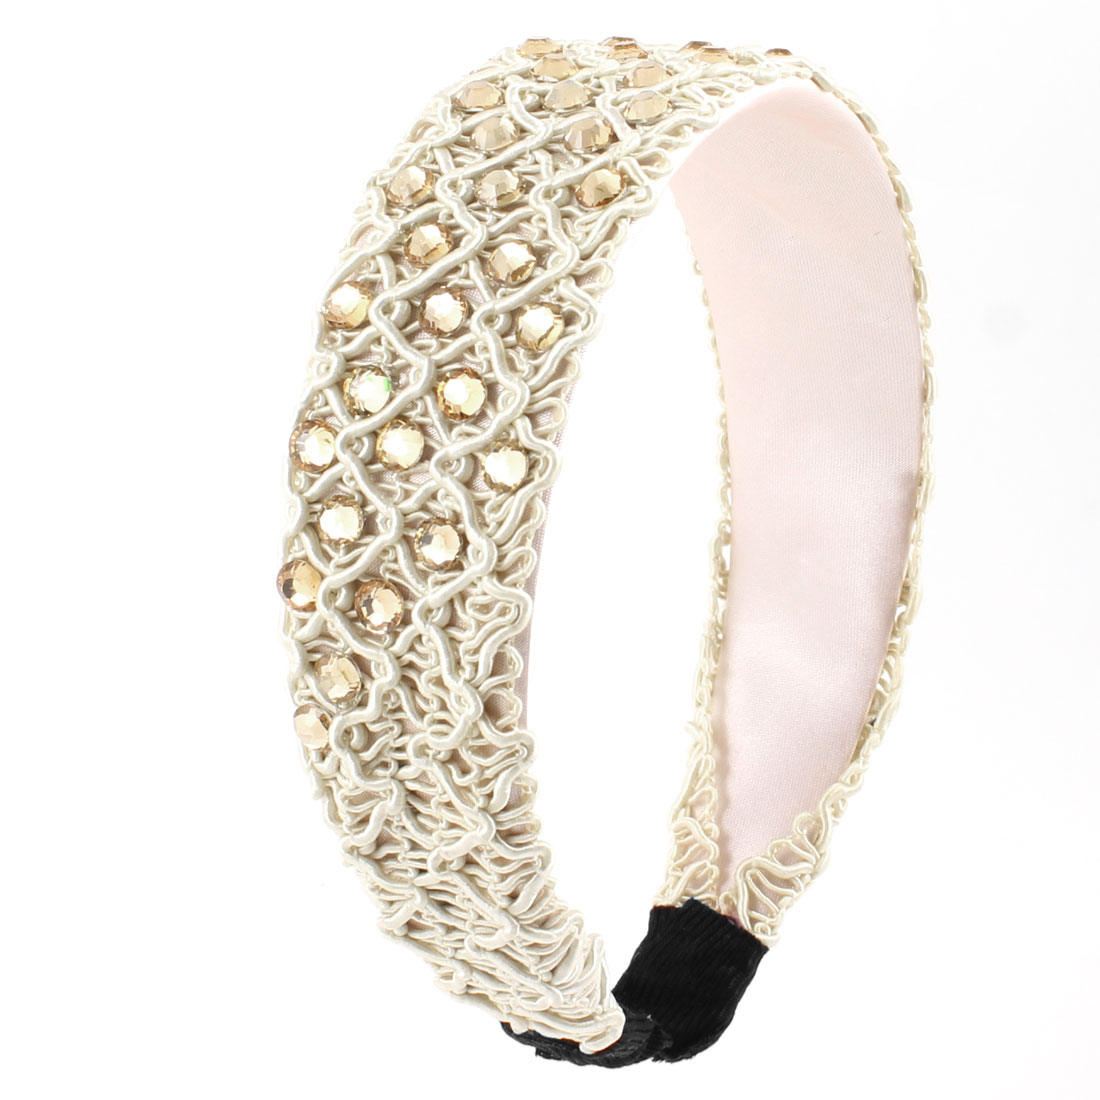 Faux Crystal String Woven 4cm Wide Plastic Hair Hoop Off White for Ladies